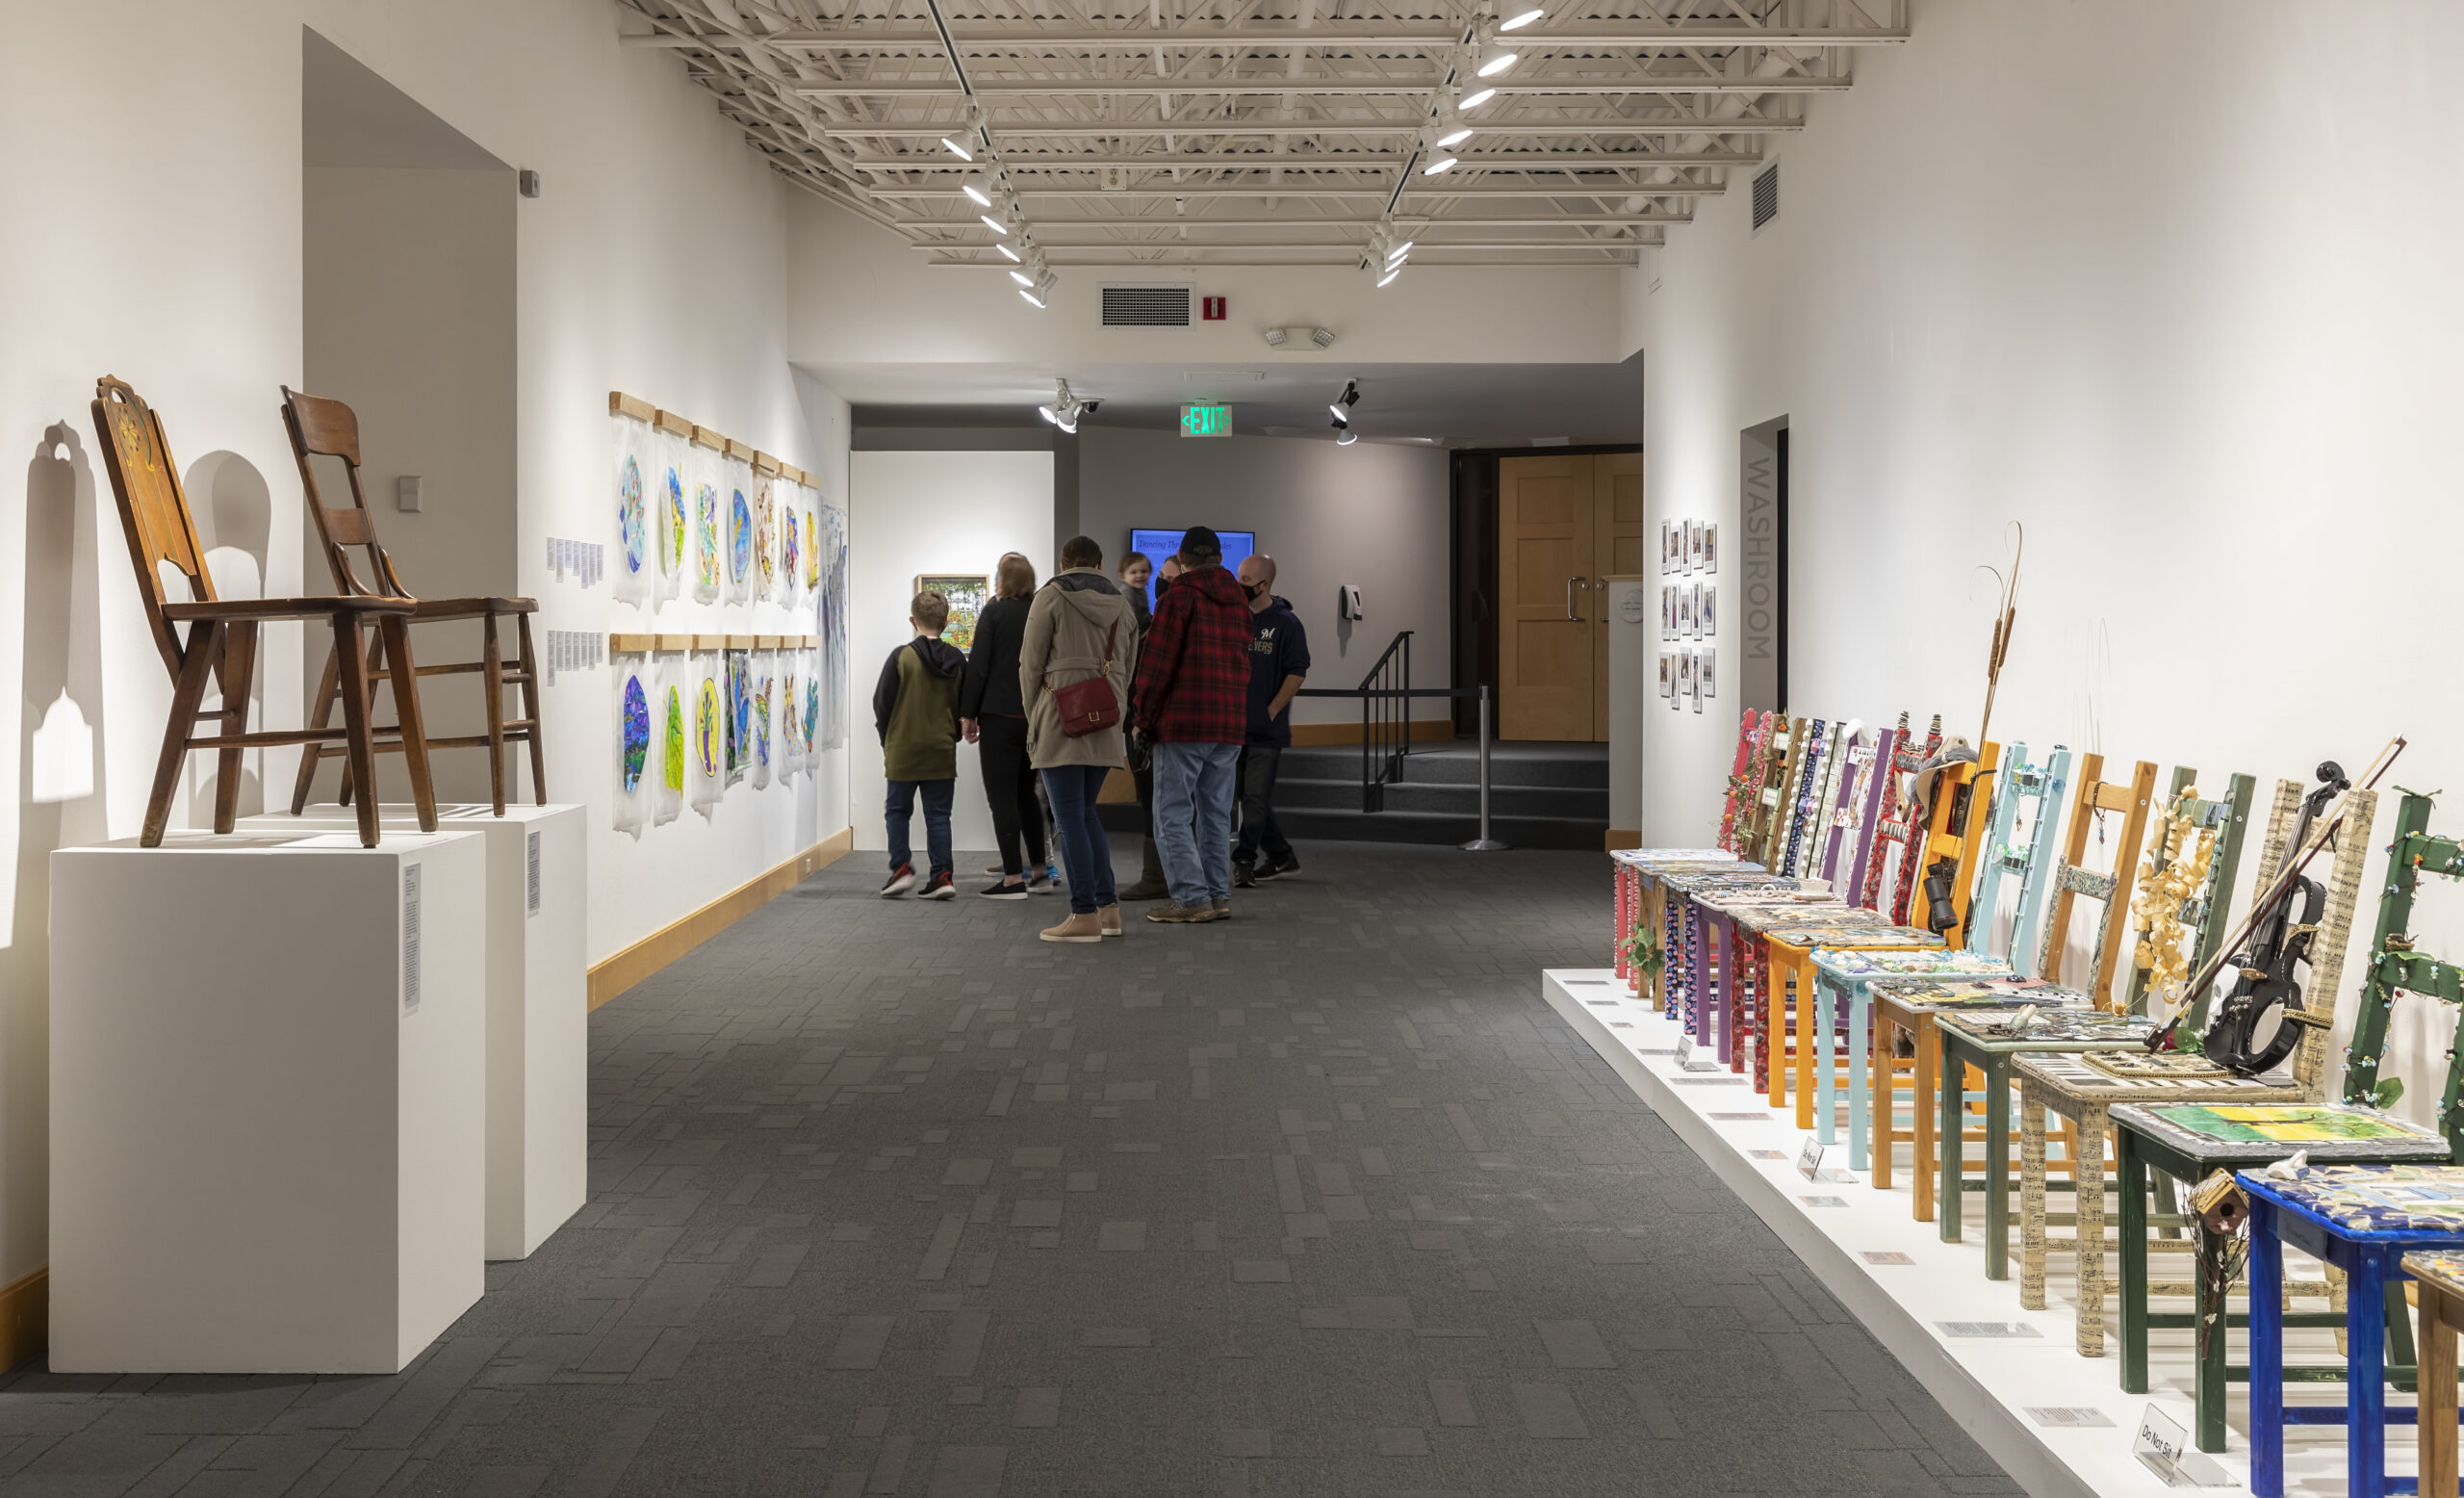 A gallery of decorative chairs and wall hangings with a huddle of visitors looking at them